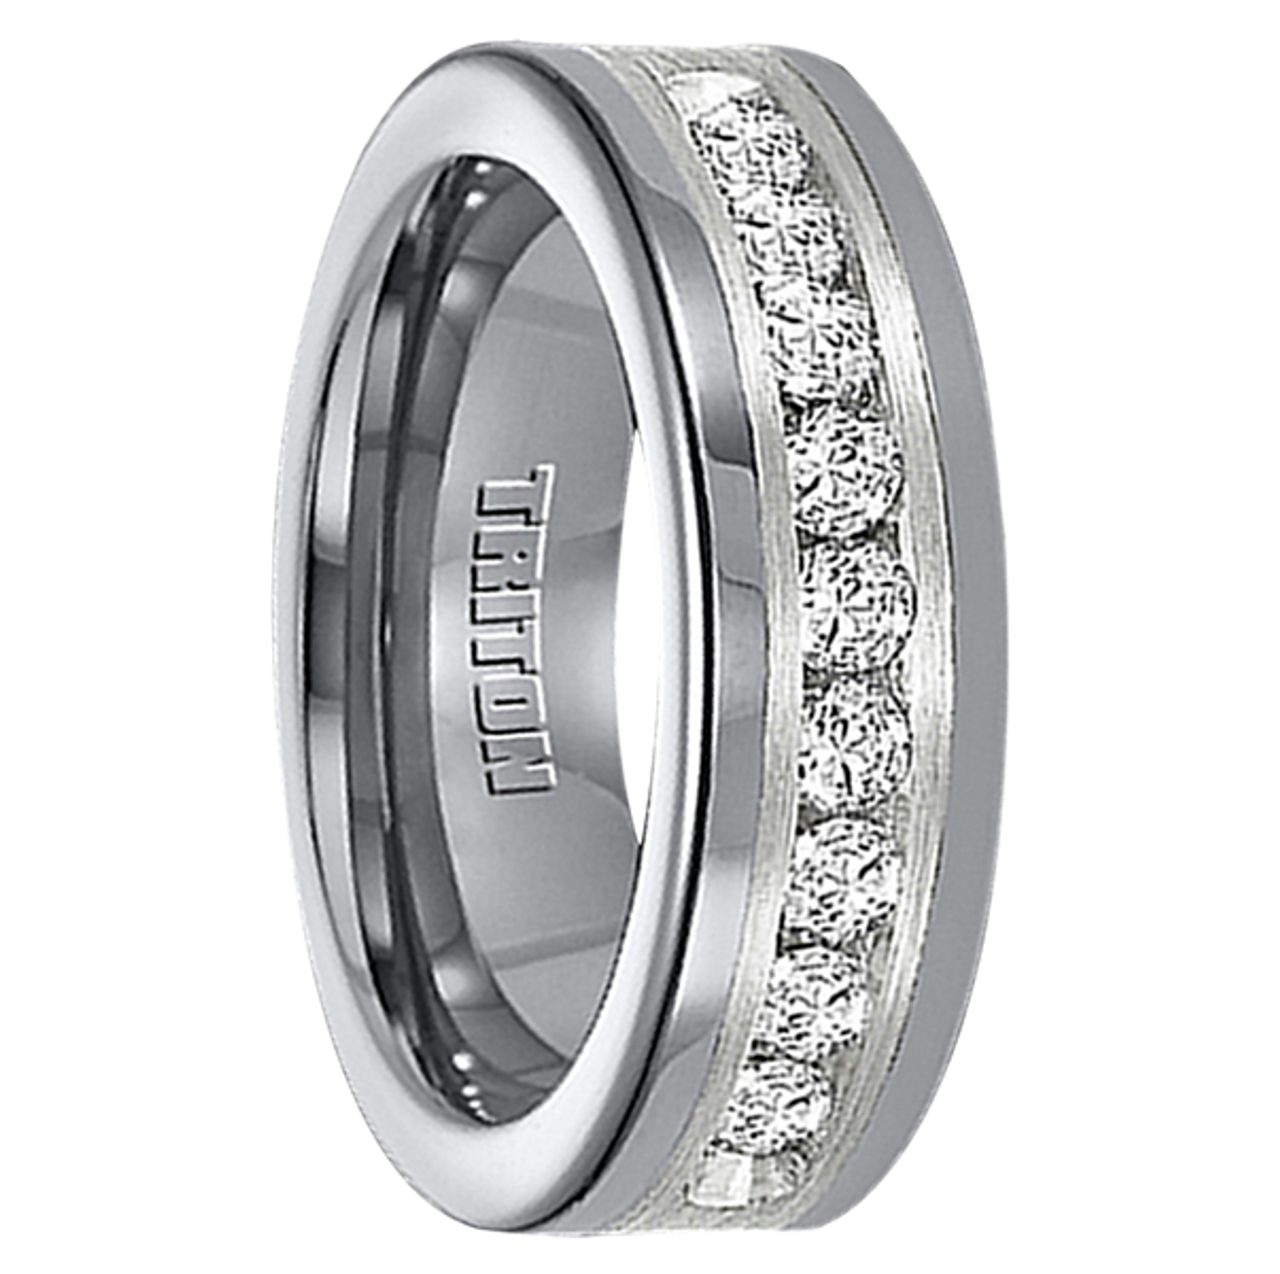 Triton 1 Carat Diamond Tunsten 8mm Wedding Band at MWB